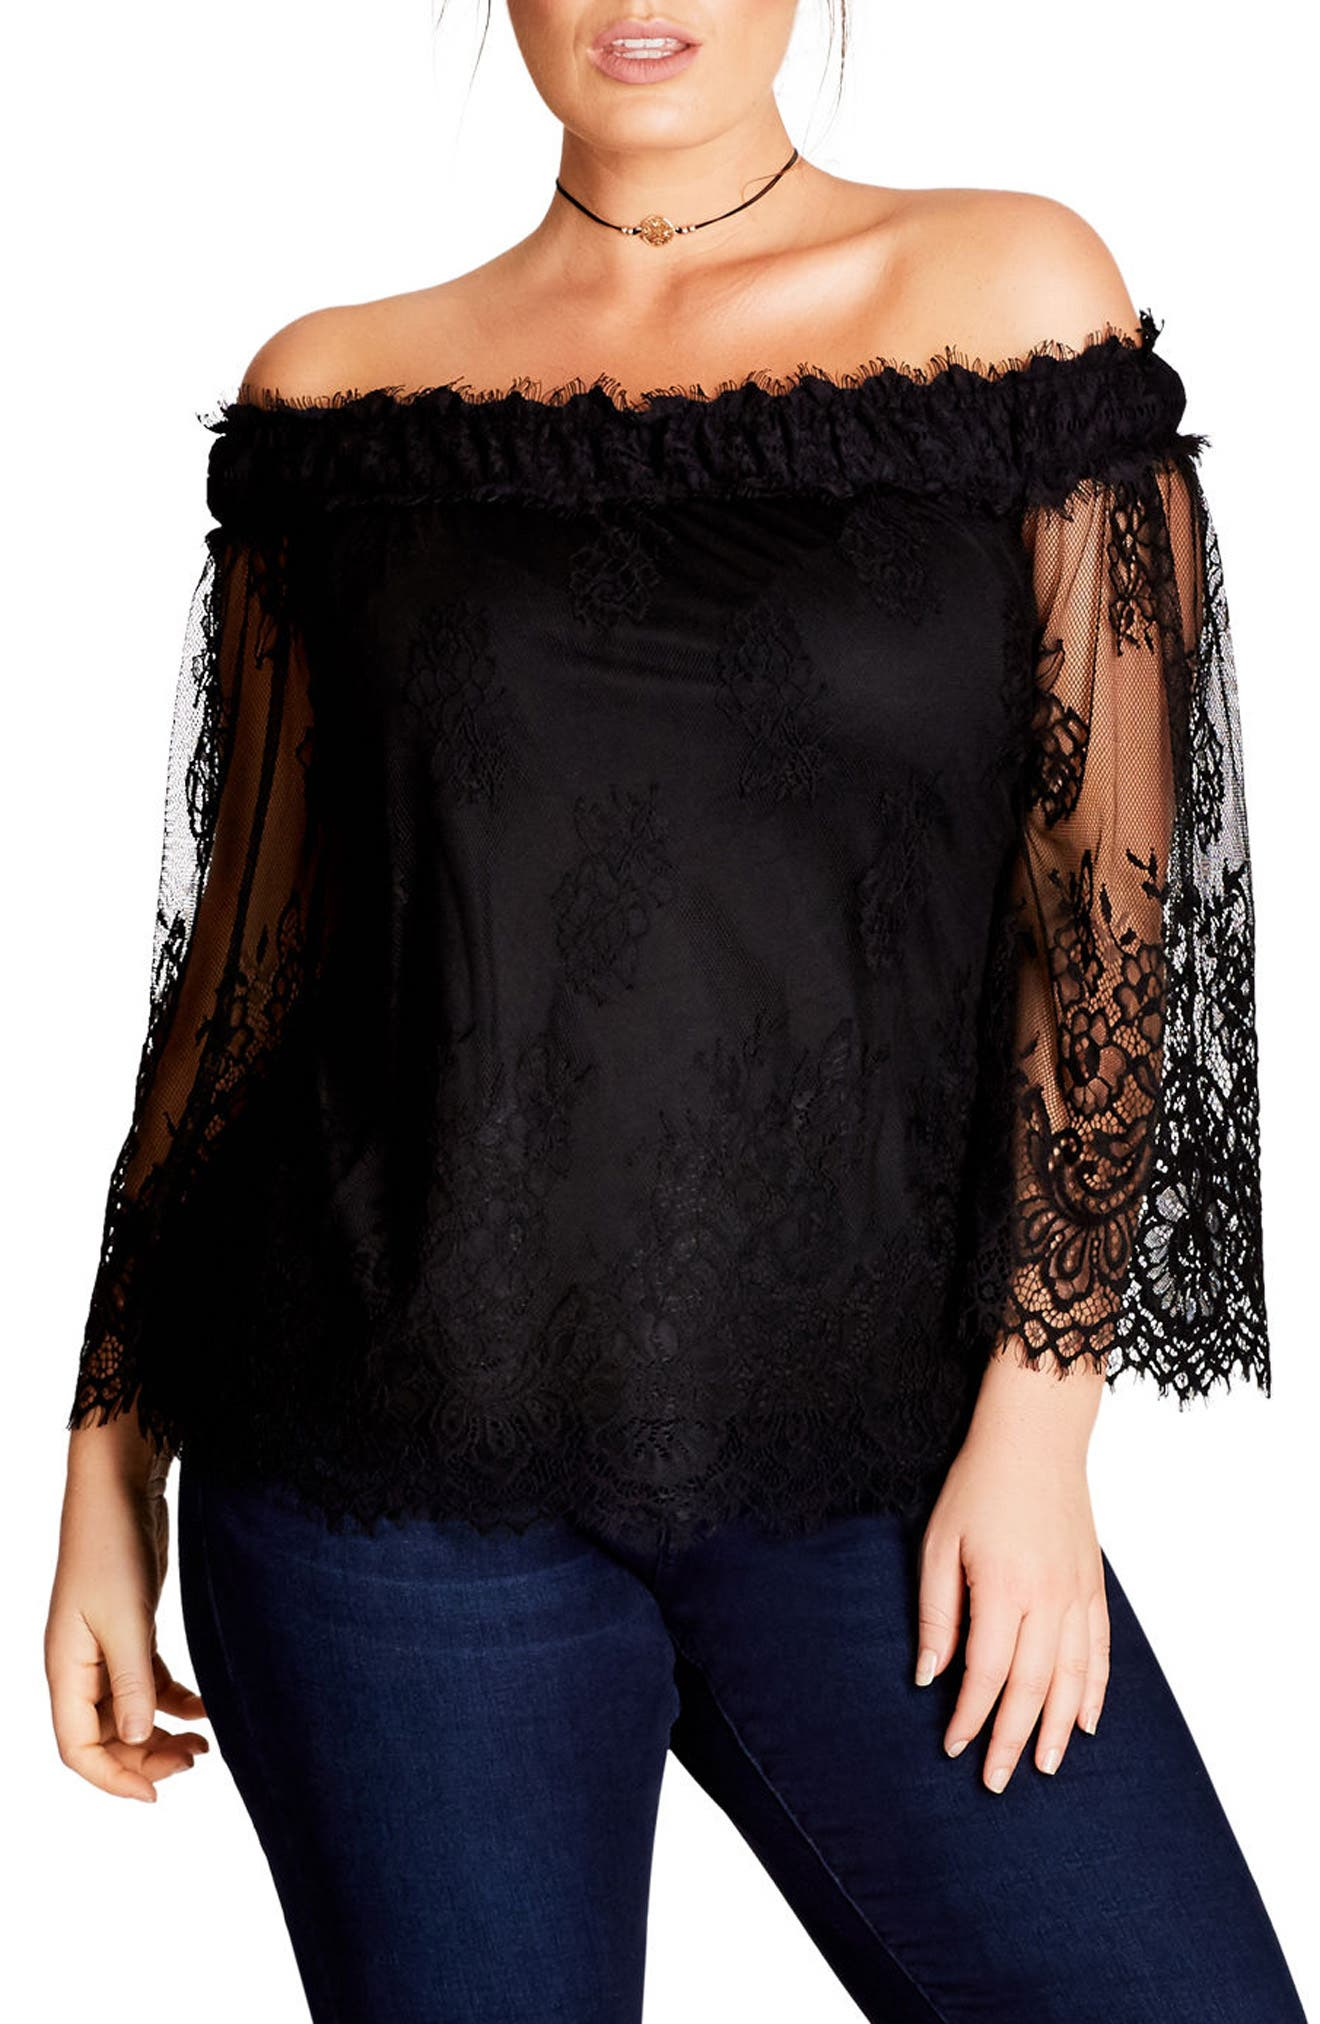 Alternate Image 1 Selected - City Chic Soft Lace Off the Shoulder Top (Plus Size)